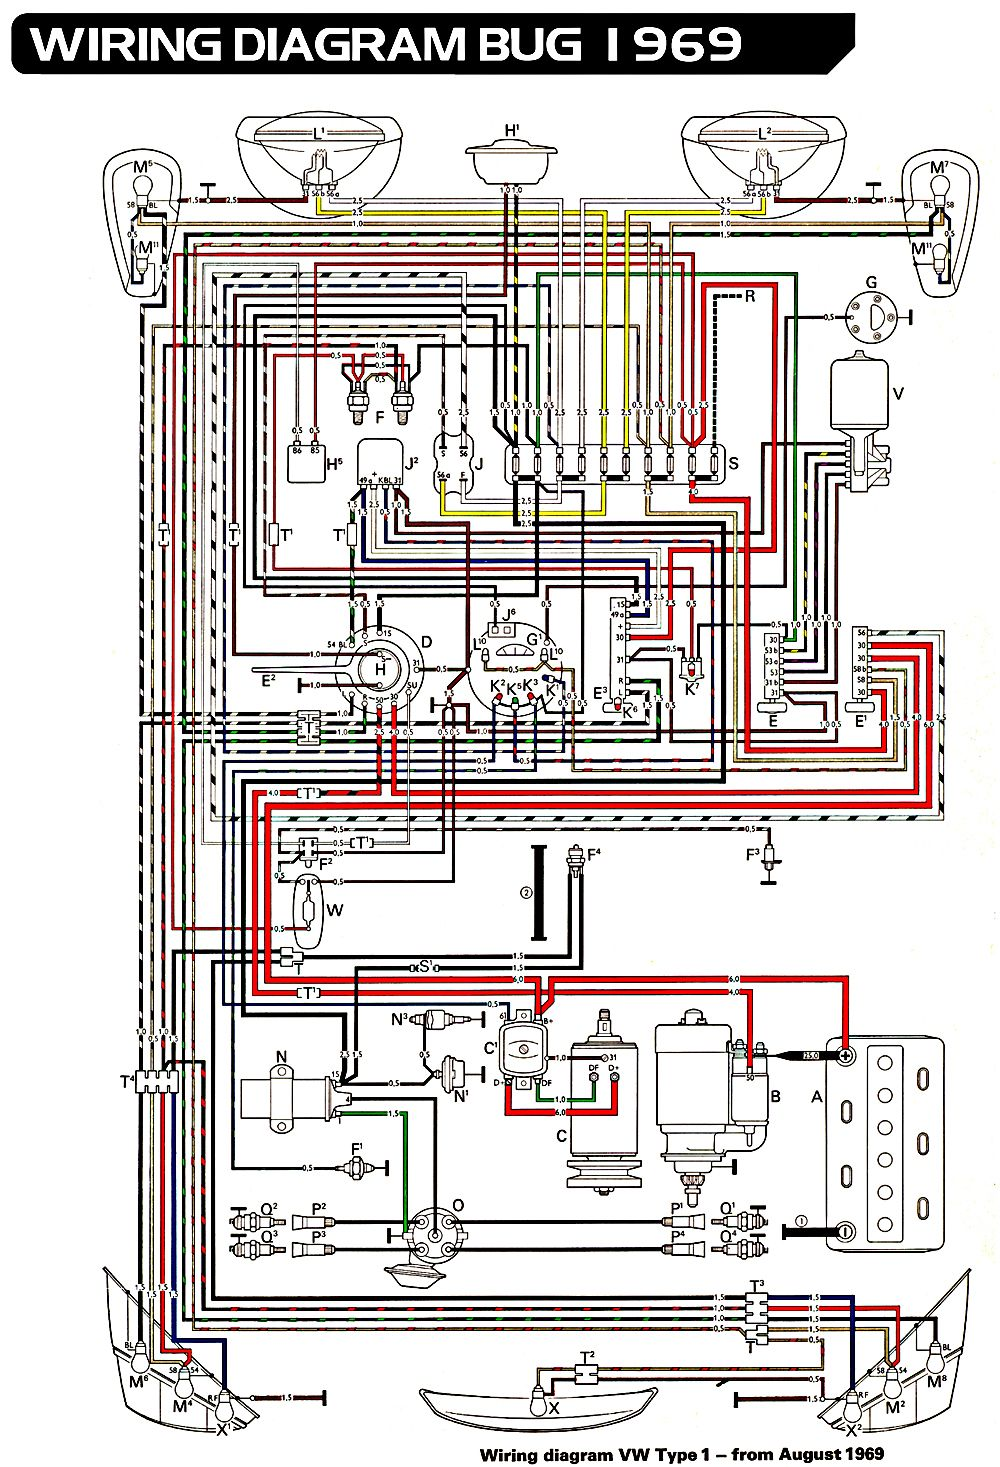 6d75c15875479254f26a32a8499d9044 volkswagen beetle wiring diagram 1966 vw beetle wiring vw golf 3 electrical wiring diagram at mifinder.co